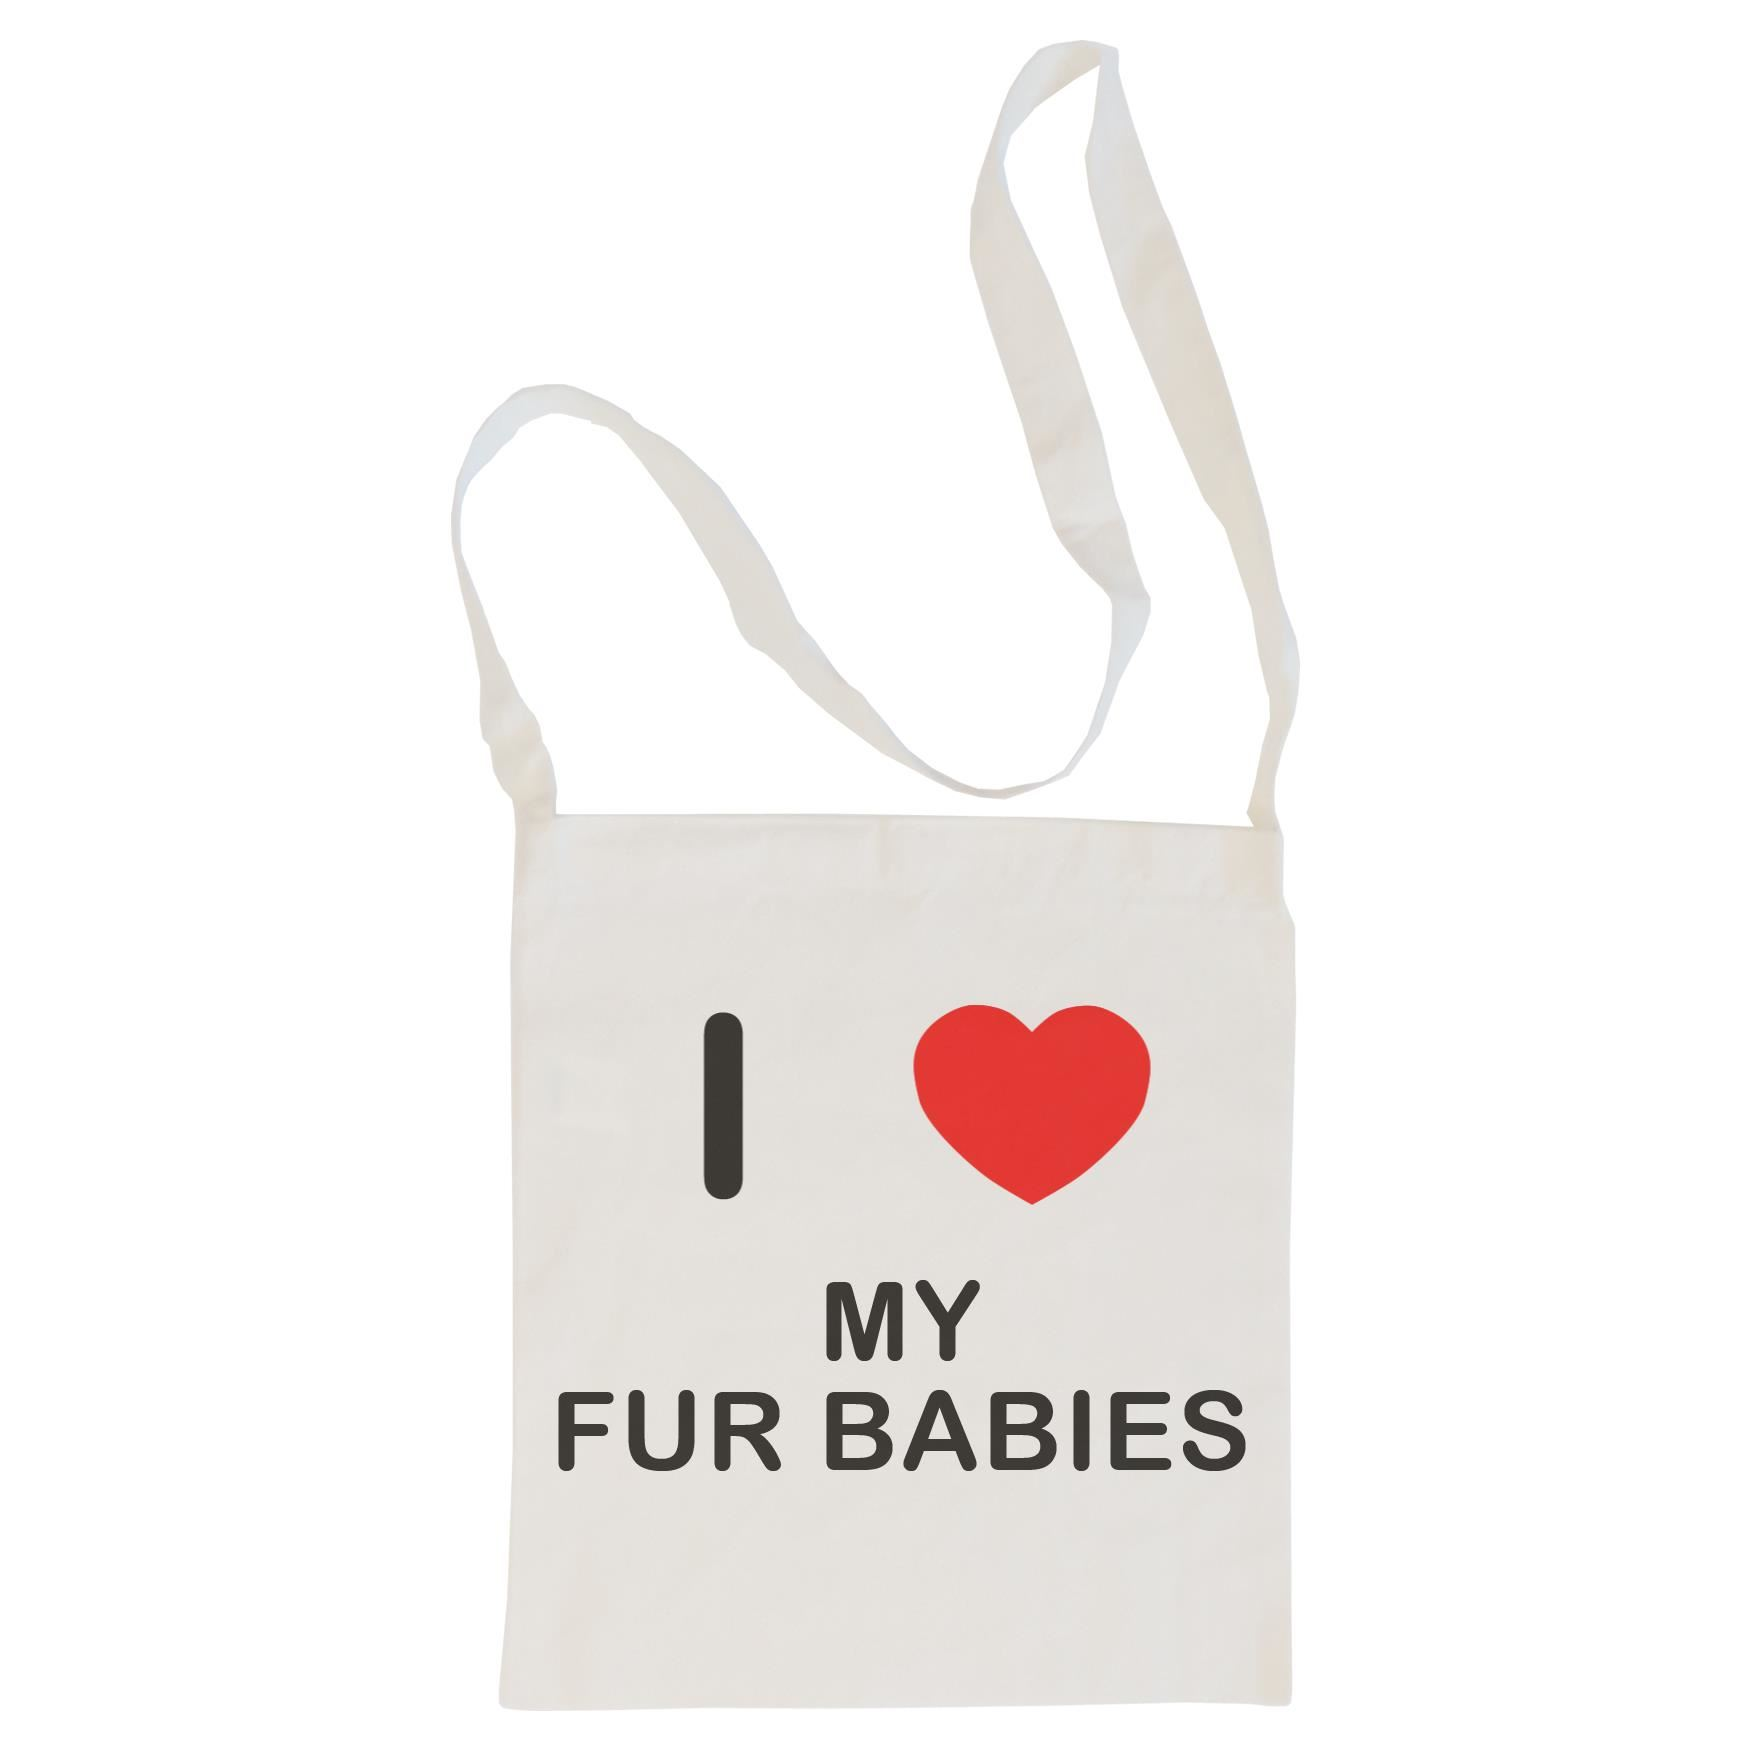 I Love My Fur Babies - Cotton Bag | Size choice Tote, Shopper or Sling